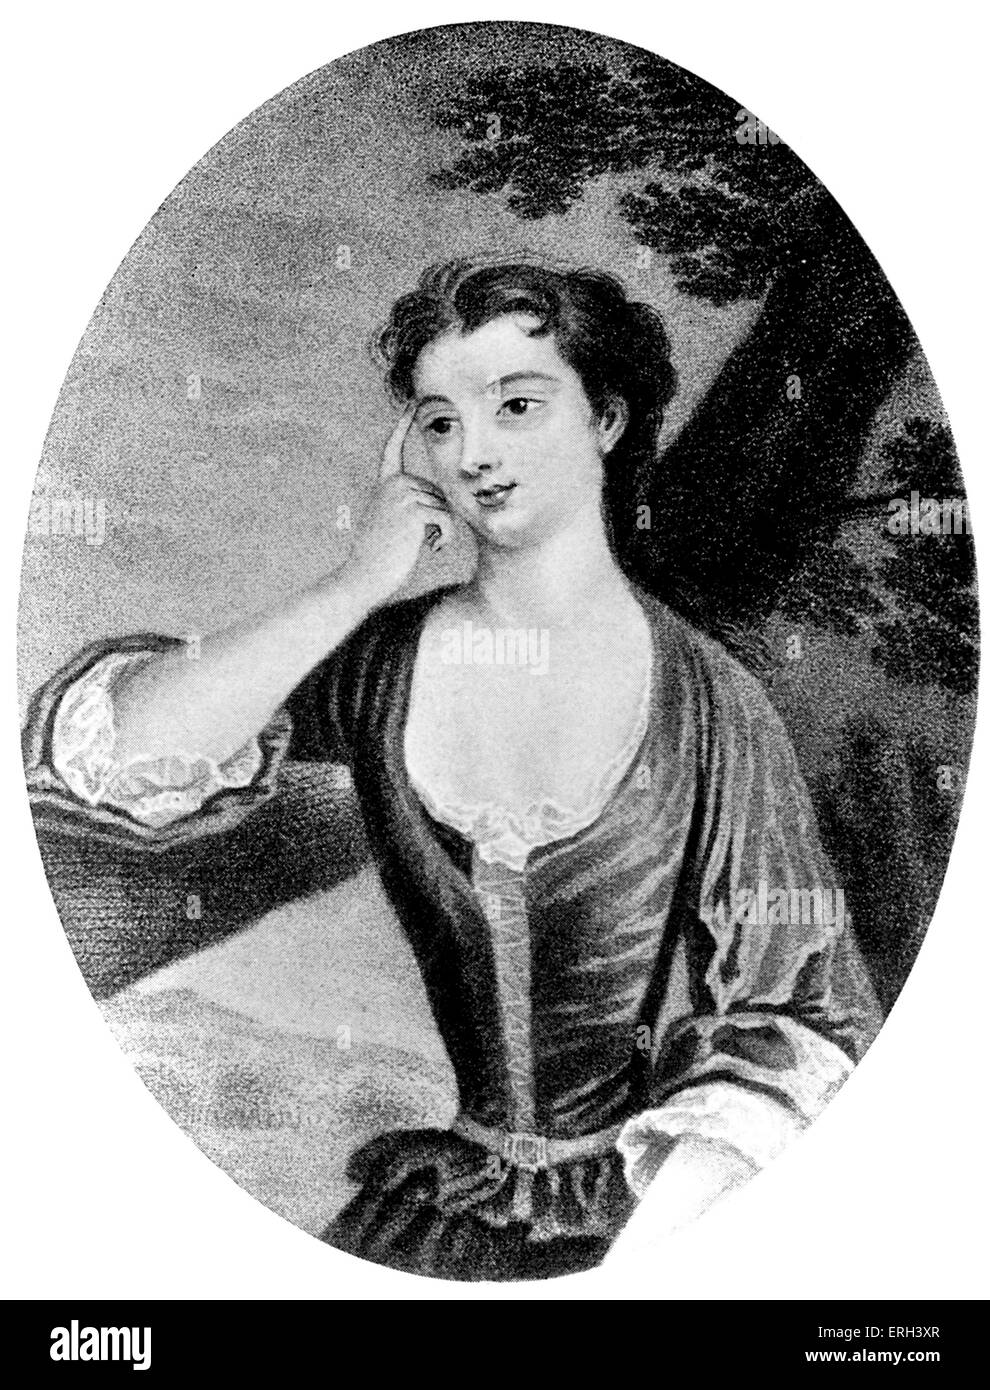 Lady Mary Wortley Montagu - portrait from 1710. After engraving by Caroline Watson. English writer and aristocrat, - Stock Image